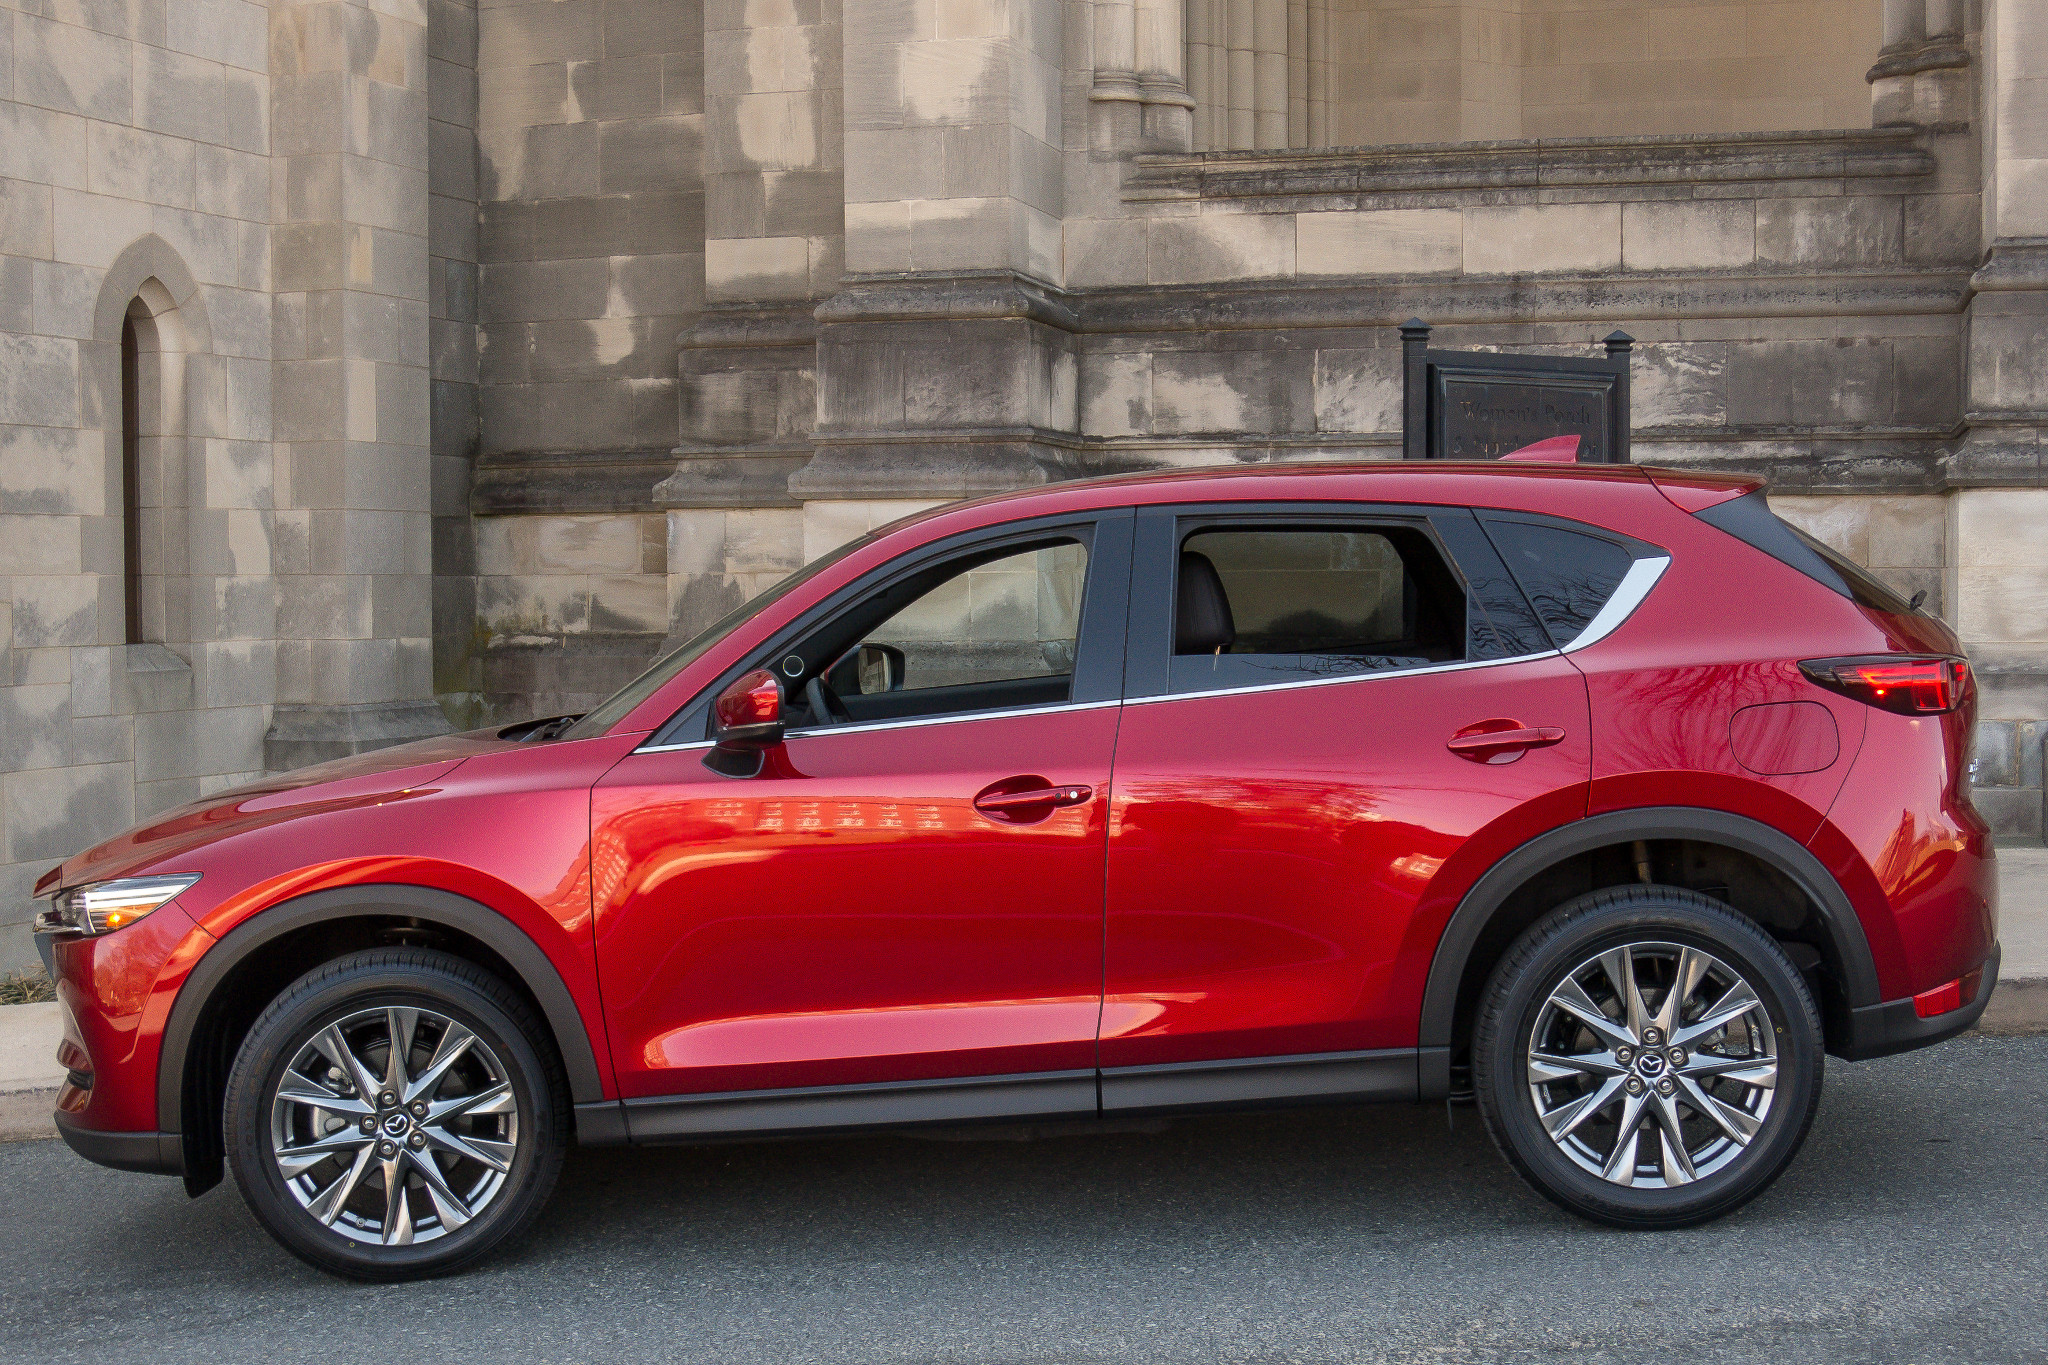 2019 Mazda Cx 5 10 Things We Like And 4 Not So Much News Cars Com